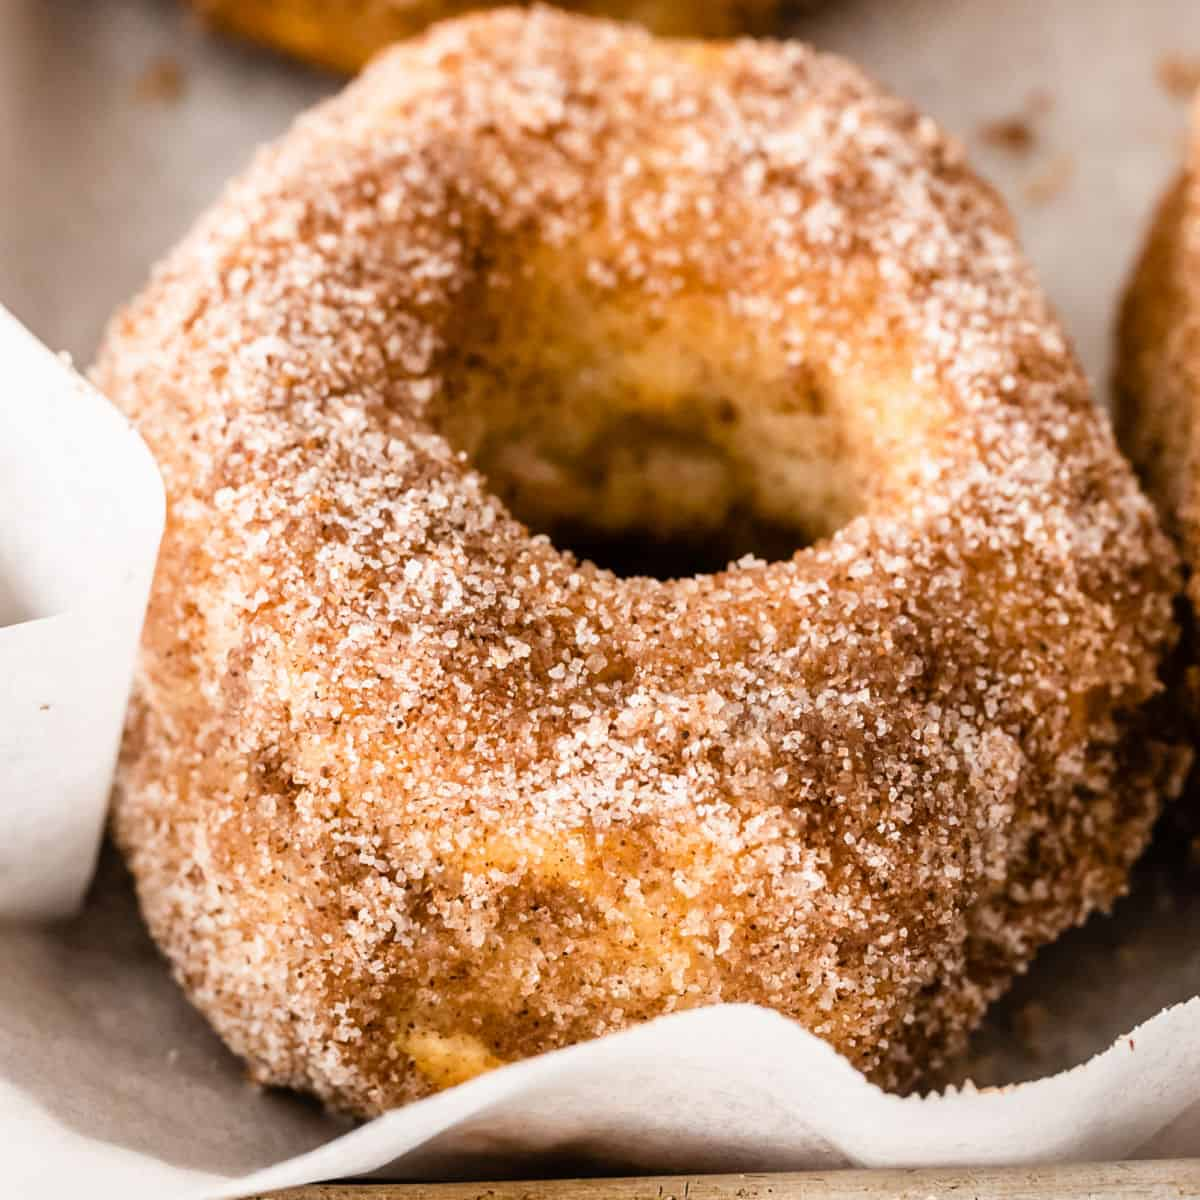 square close up image of a cinnamon-sugar air fryer donut on a baking sheet with parchment paper